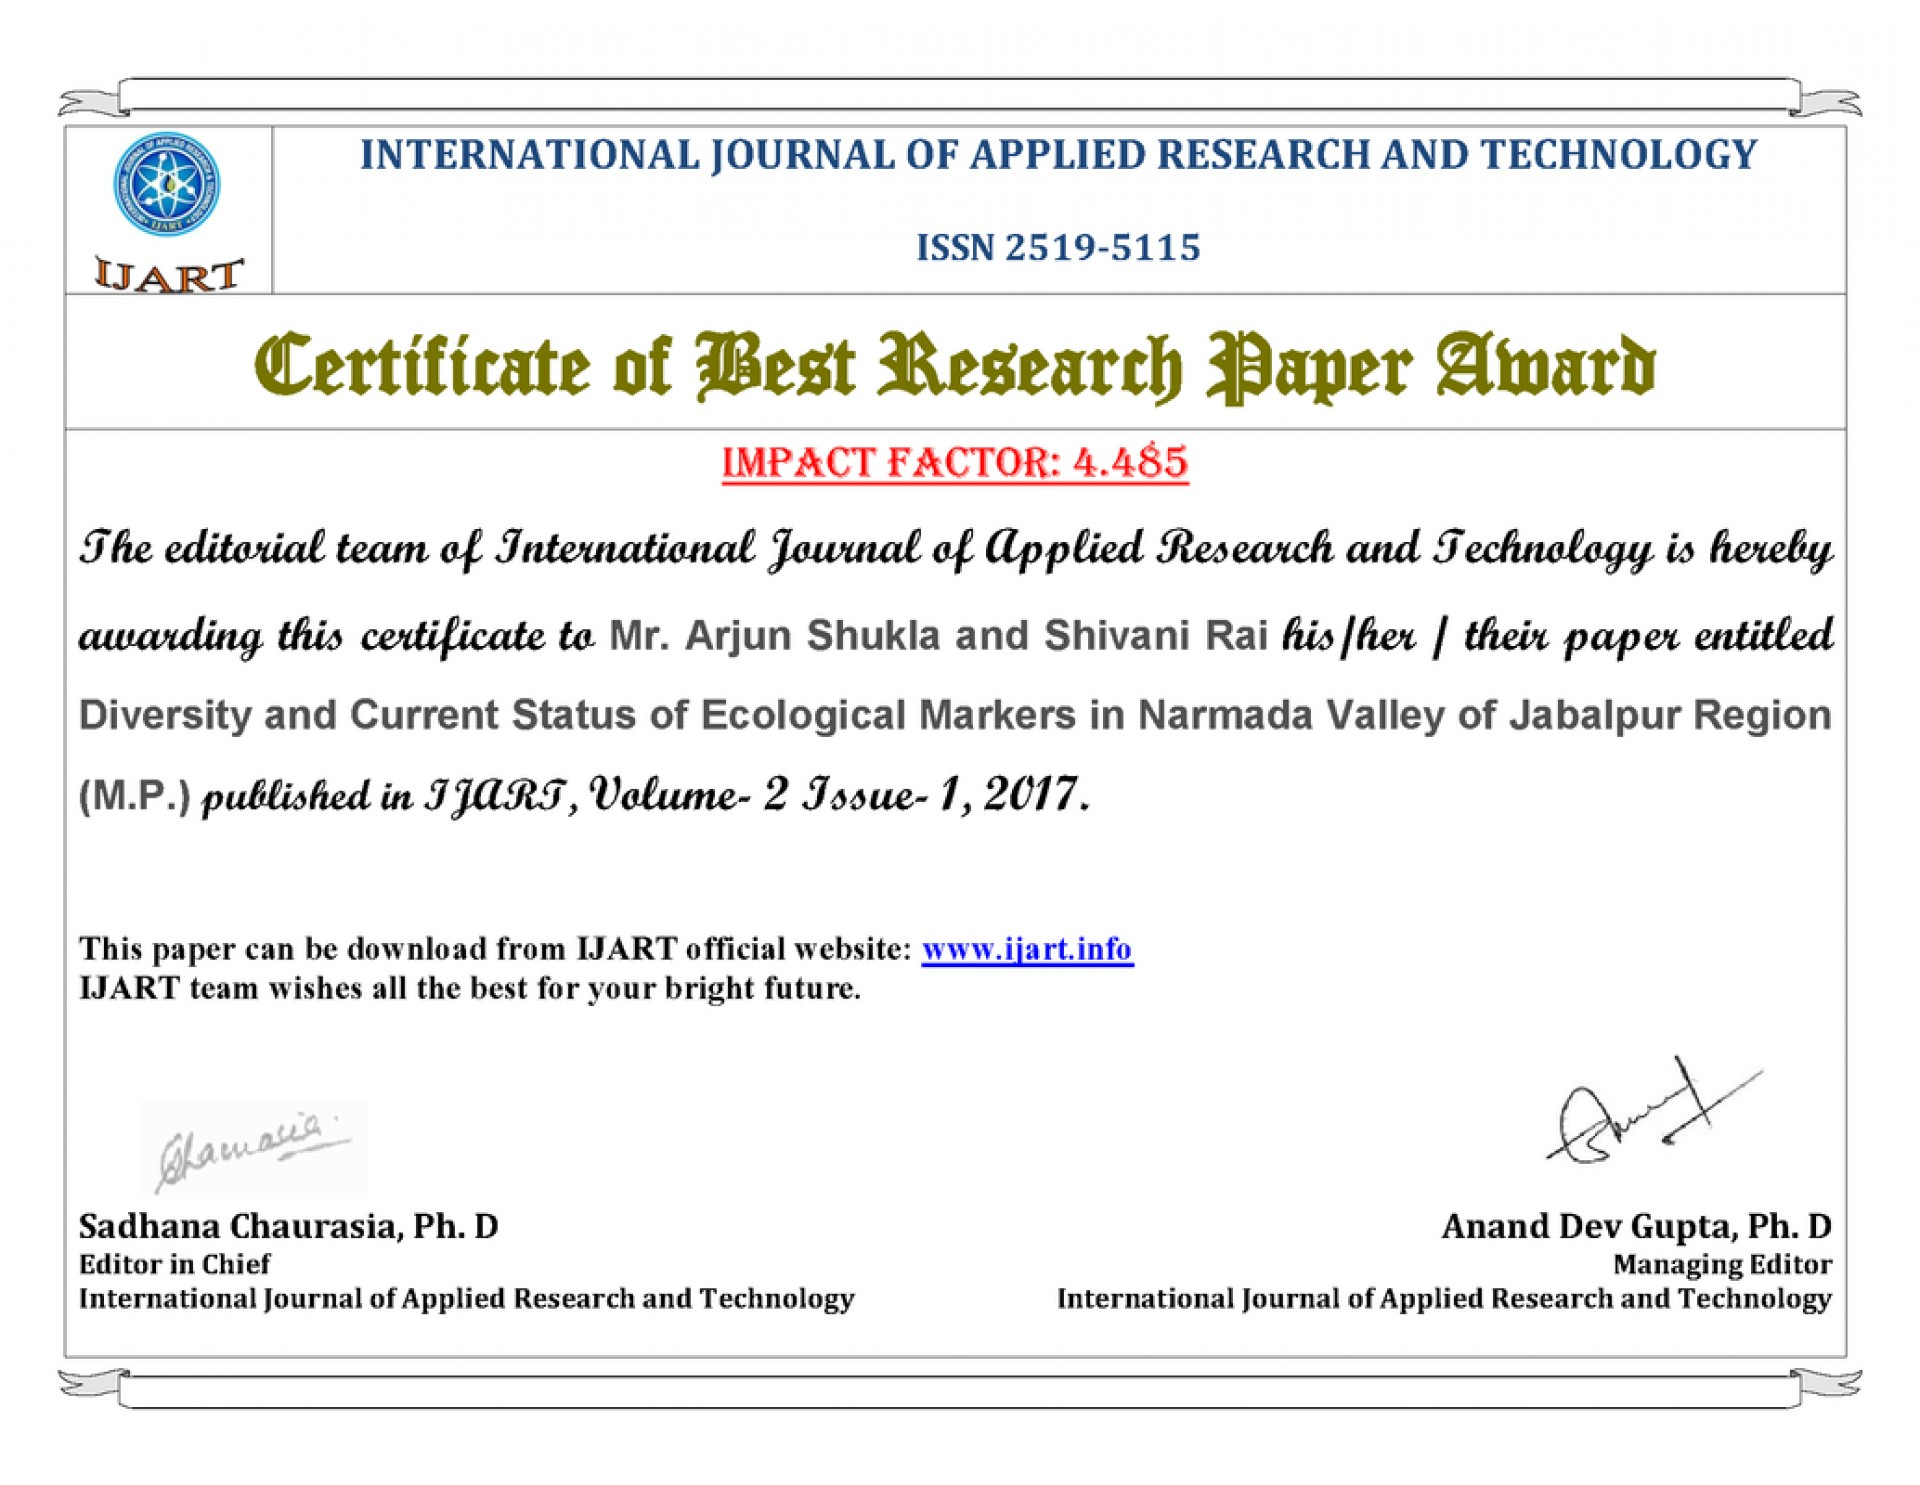 001 Best Sites For Downloading Researchs Certificate 1 Orig Excellent Research Papers Website Site To Download Free 1920